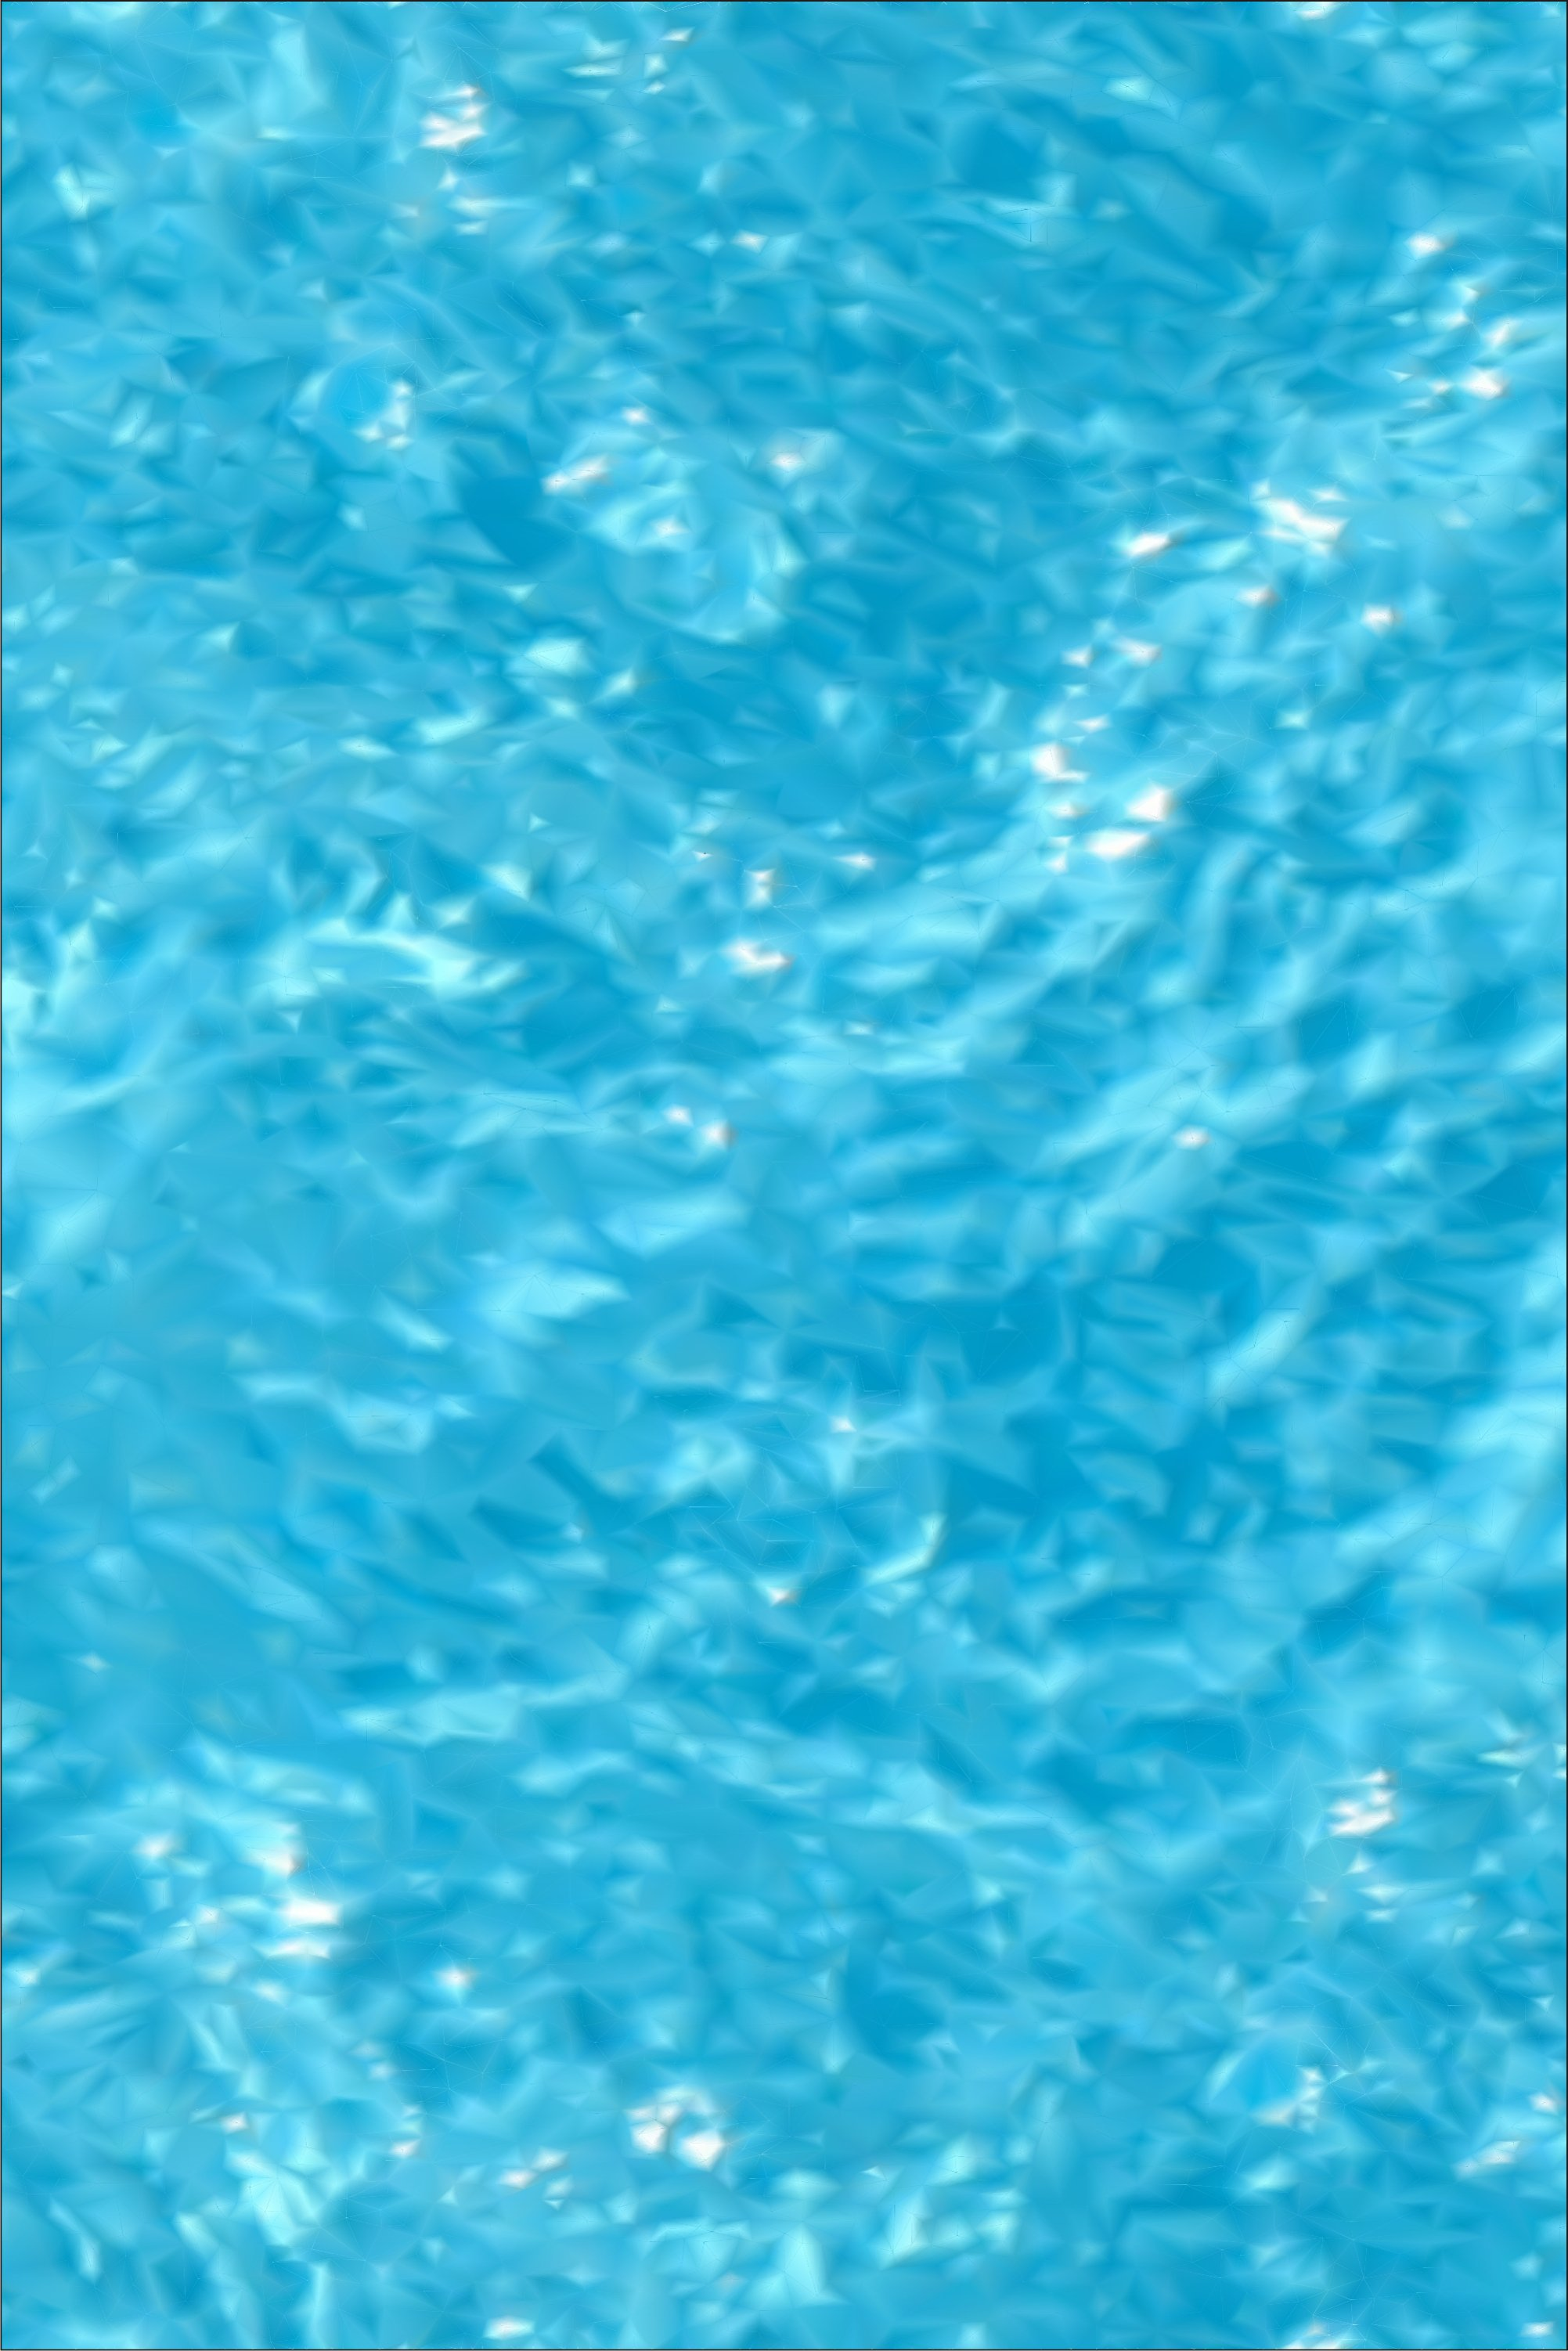 Pool Party Invitation Backgrounds